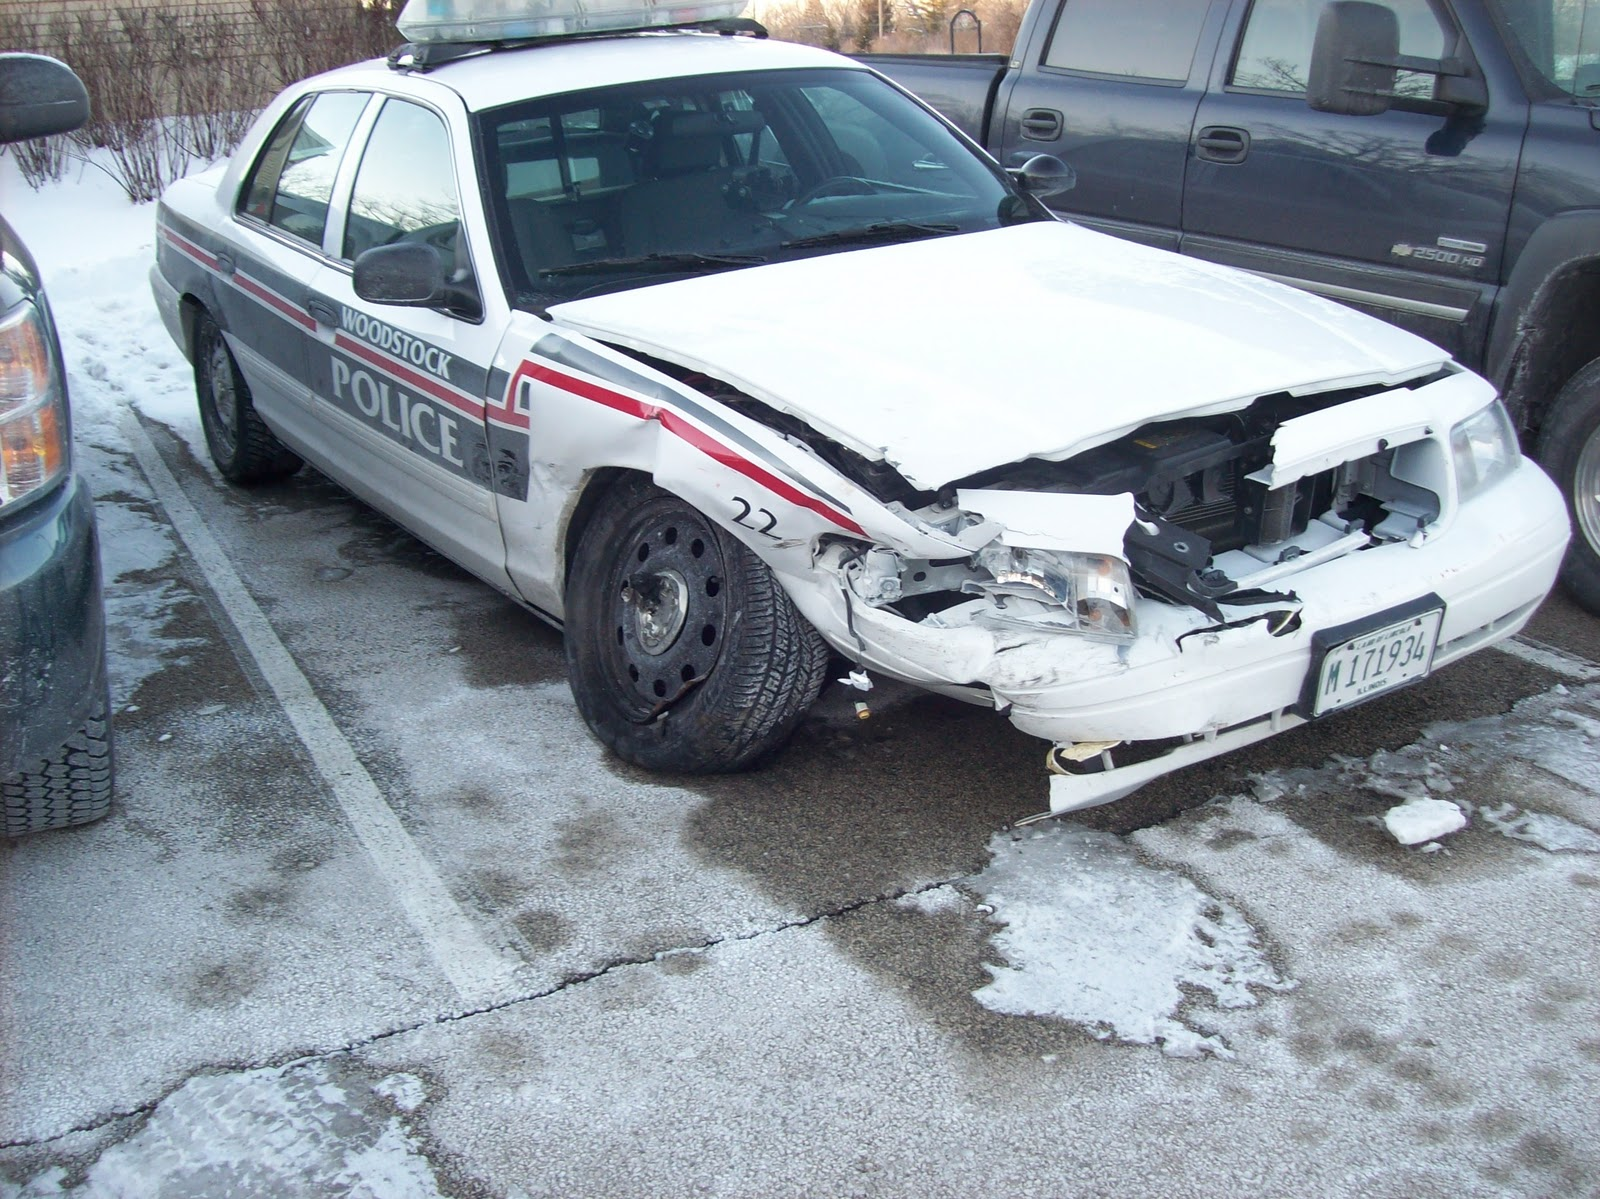 Woodstock Advocate Woodstock Police Car Was It Hit Or Did It Hit